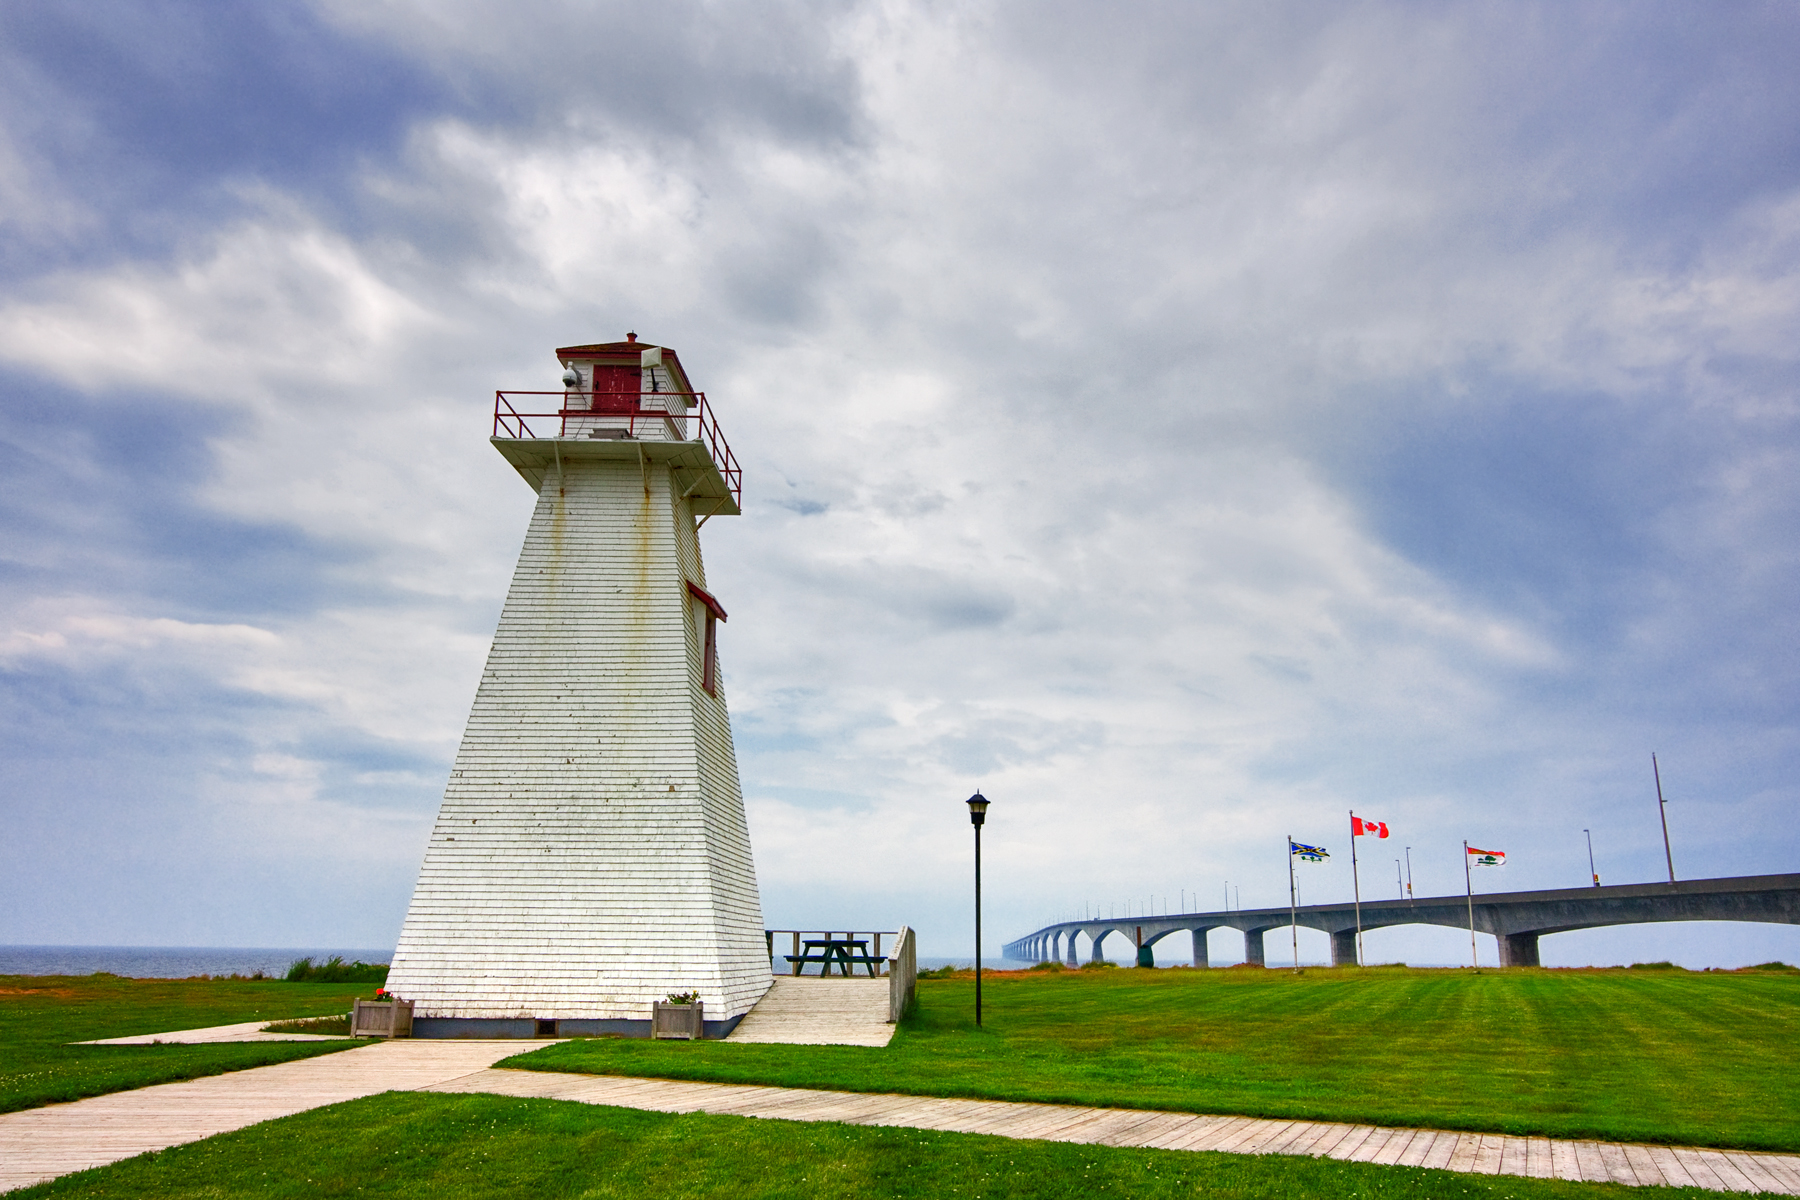 PEI Lighthouse - HDR, Architectural, Picture, Island, Landmark, HQ Photo